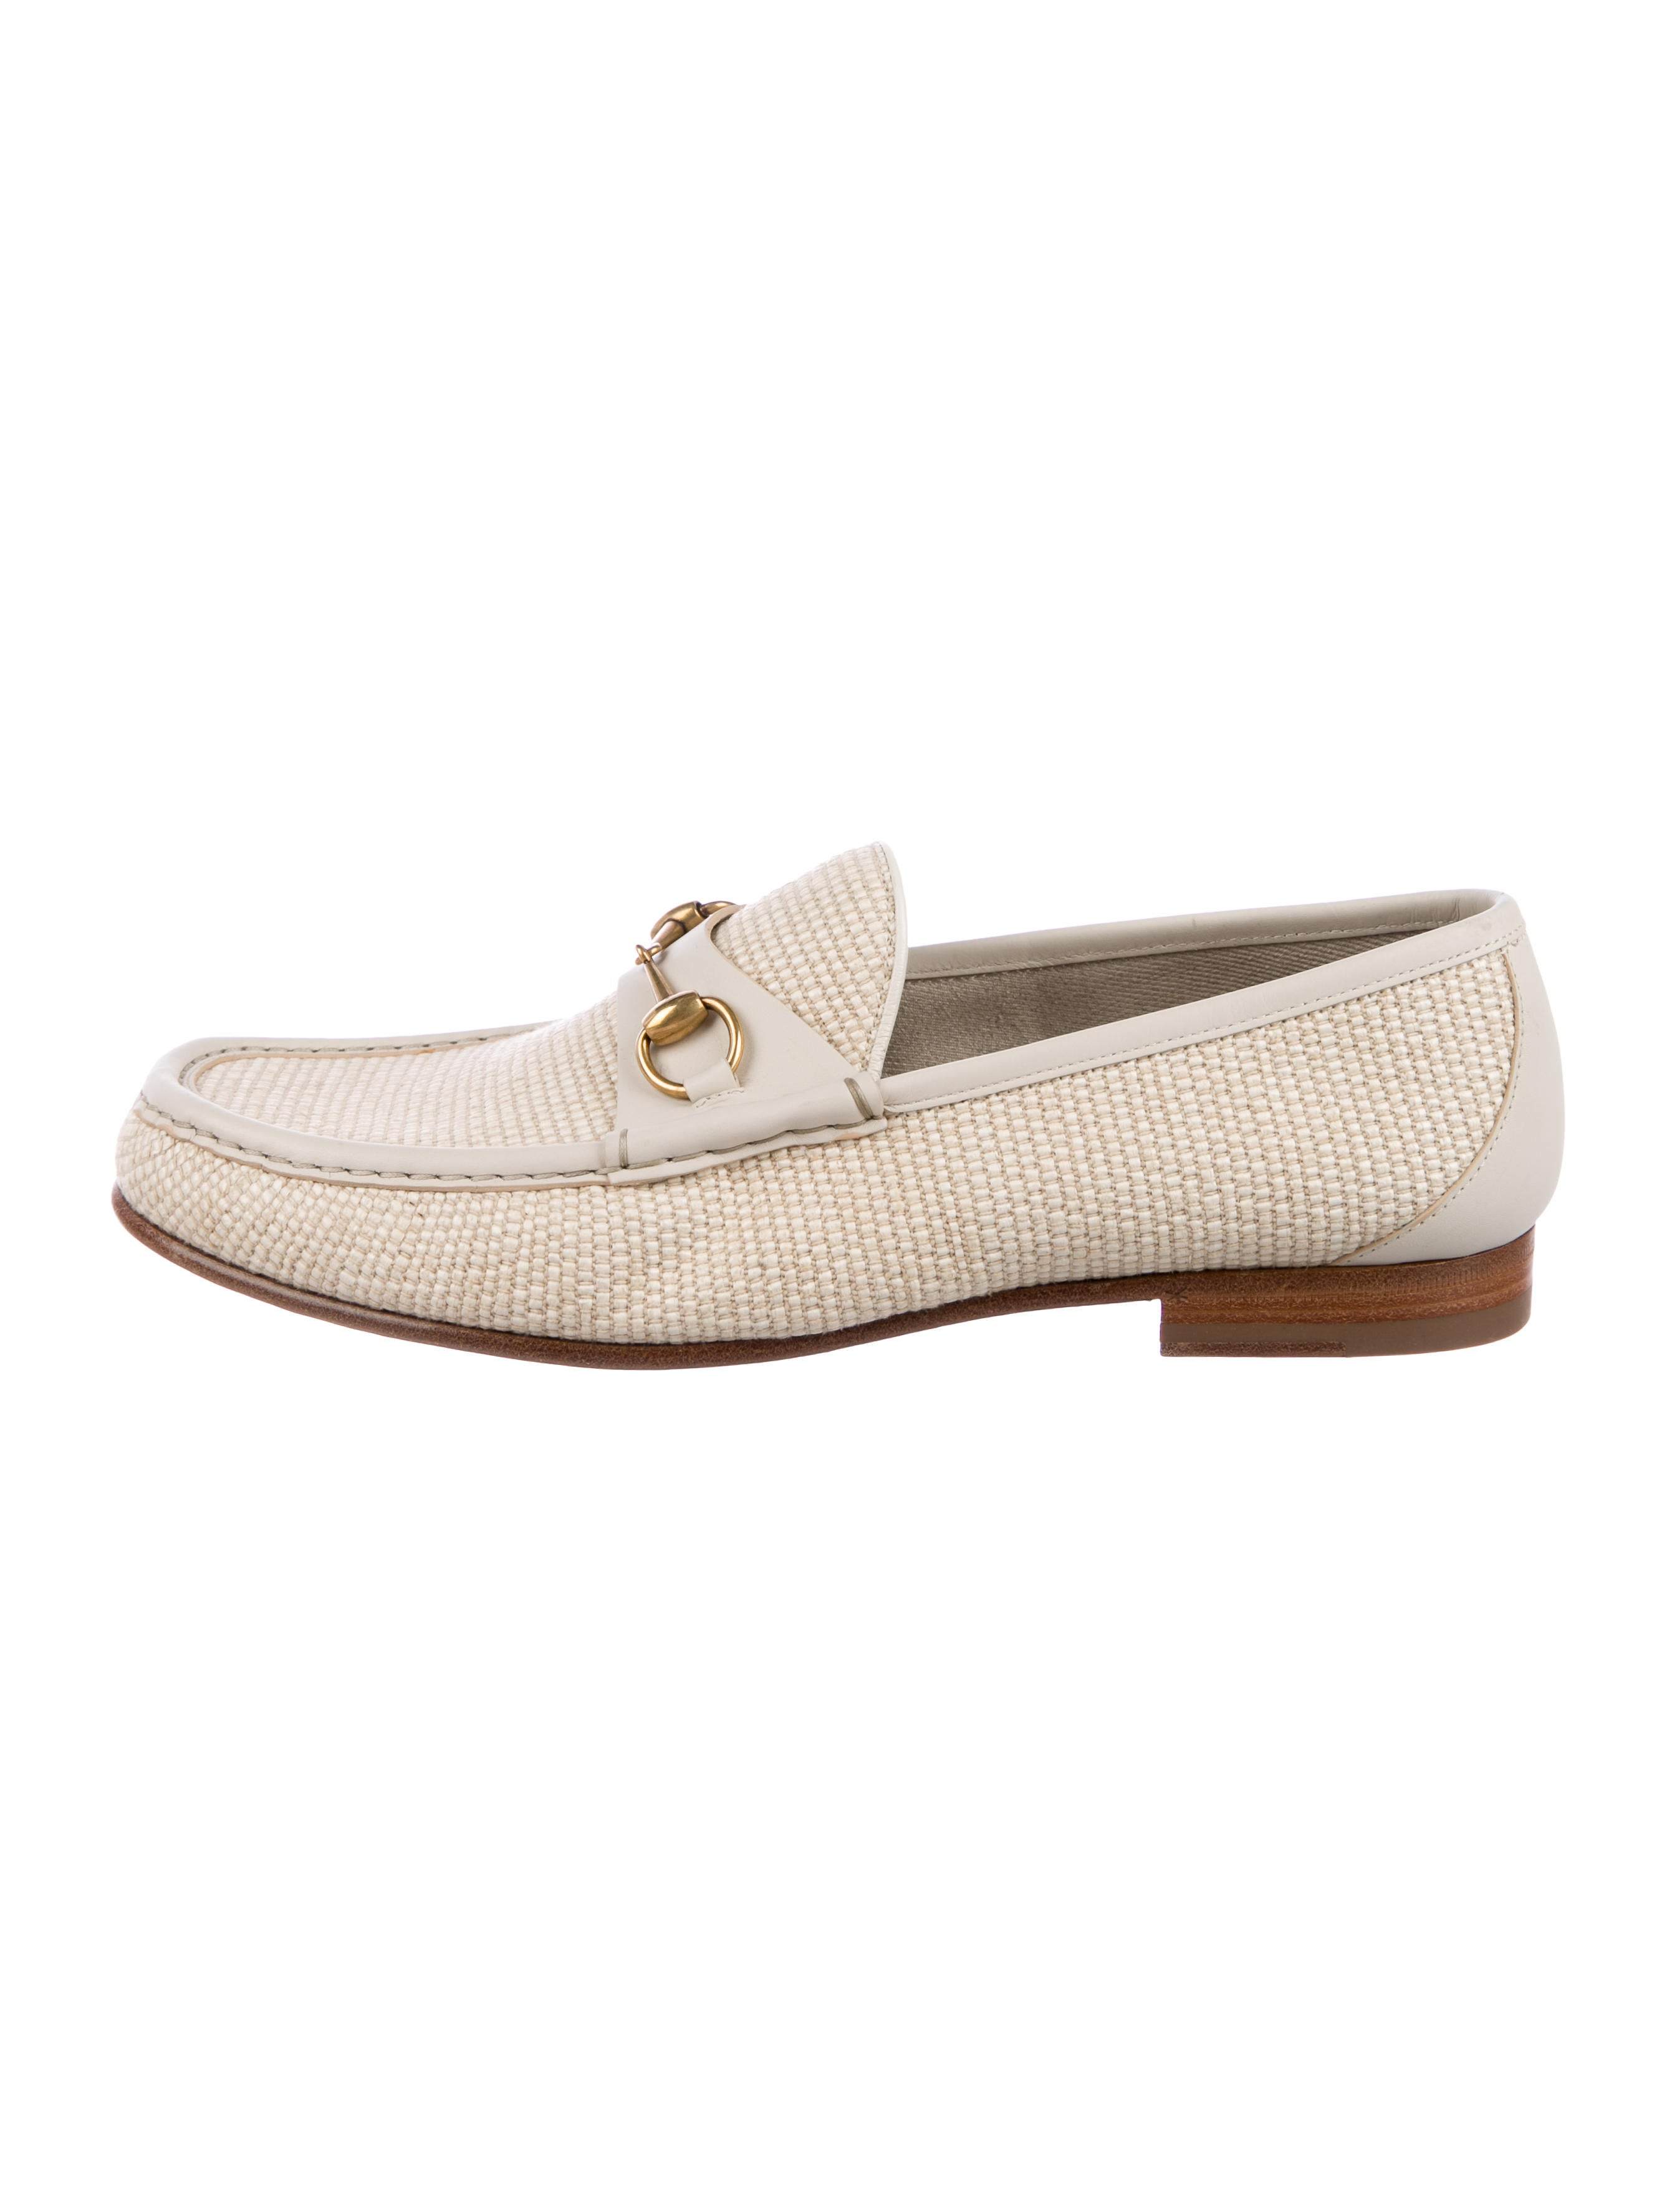 541433727 Gucci 1953 Horsebit Raffia Loafers - Shoes - GUC204146 | The RealReal